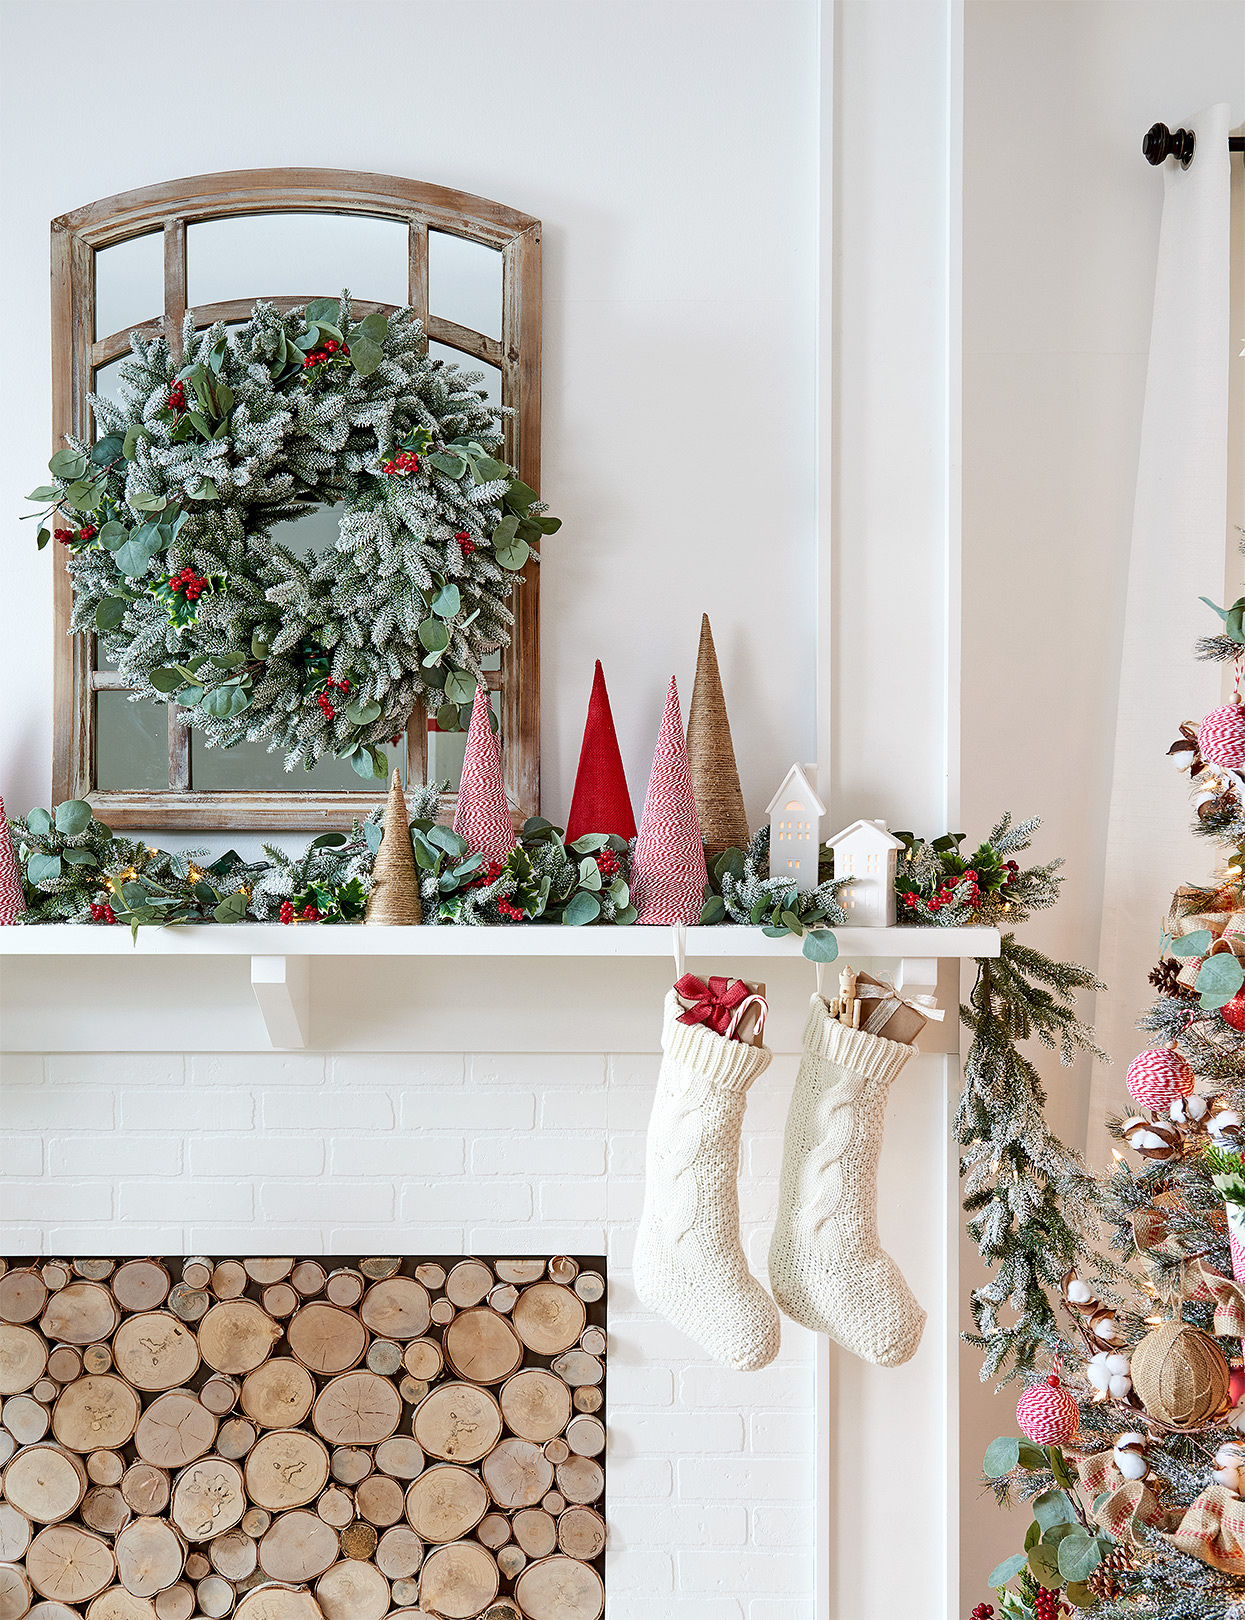 wreath above mantel with twine-wrapped cones and flocked greenery